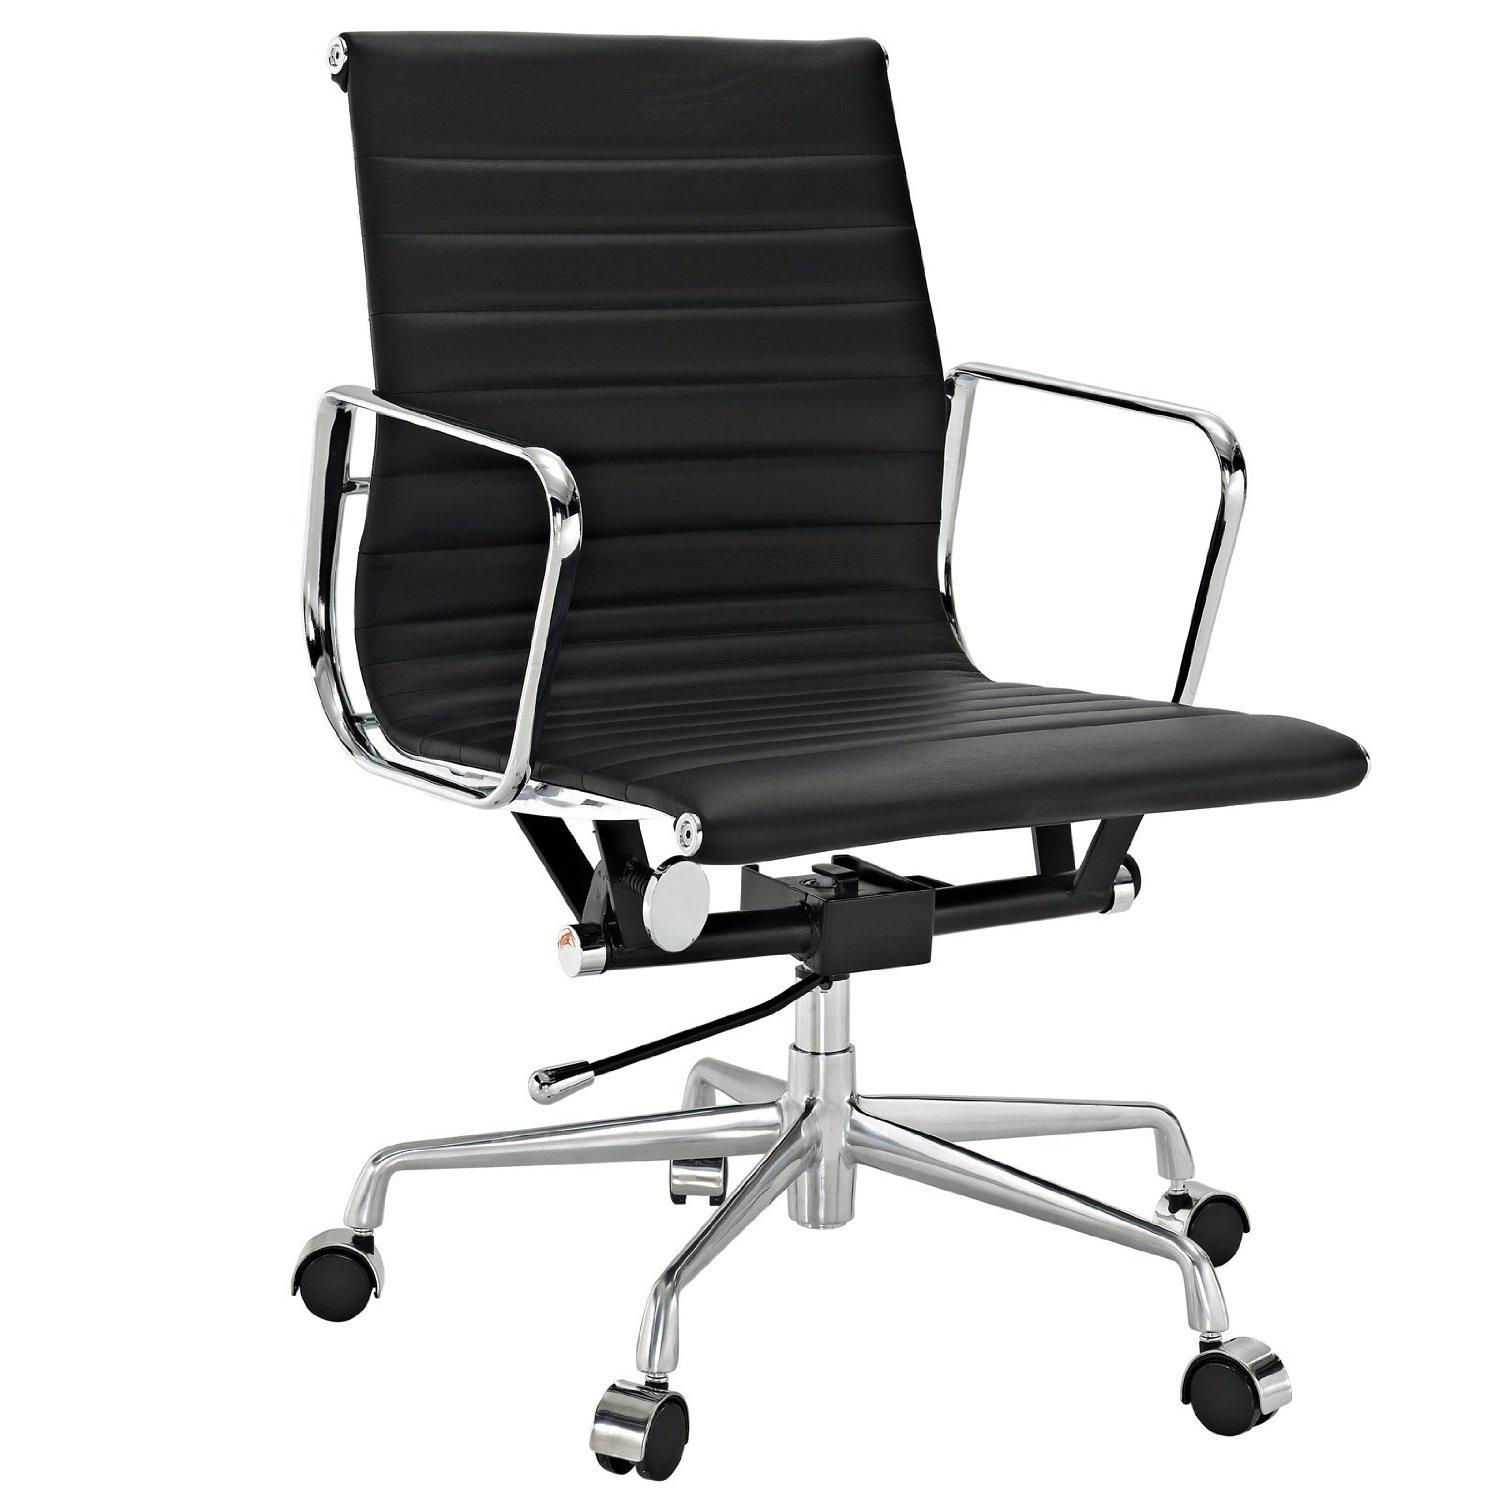 Amazoncom Ribbed Mid Back Office Chair in Black Genuine Leather